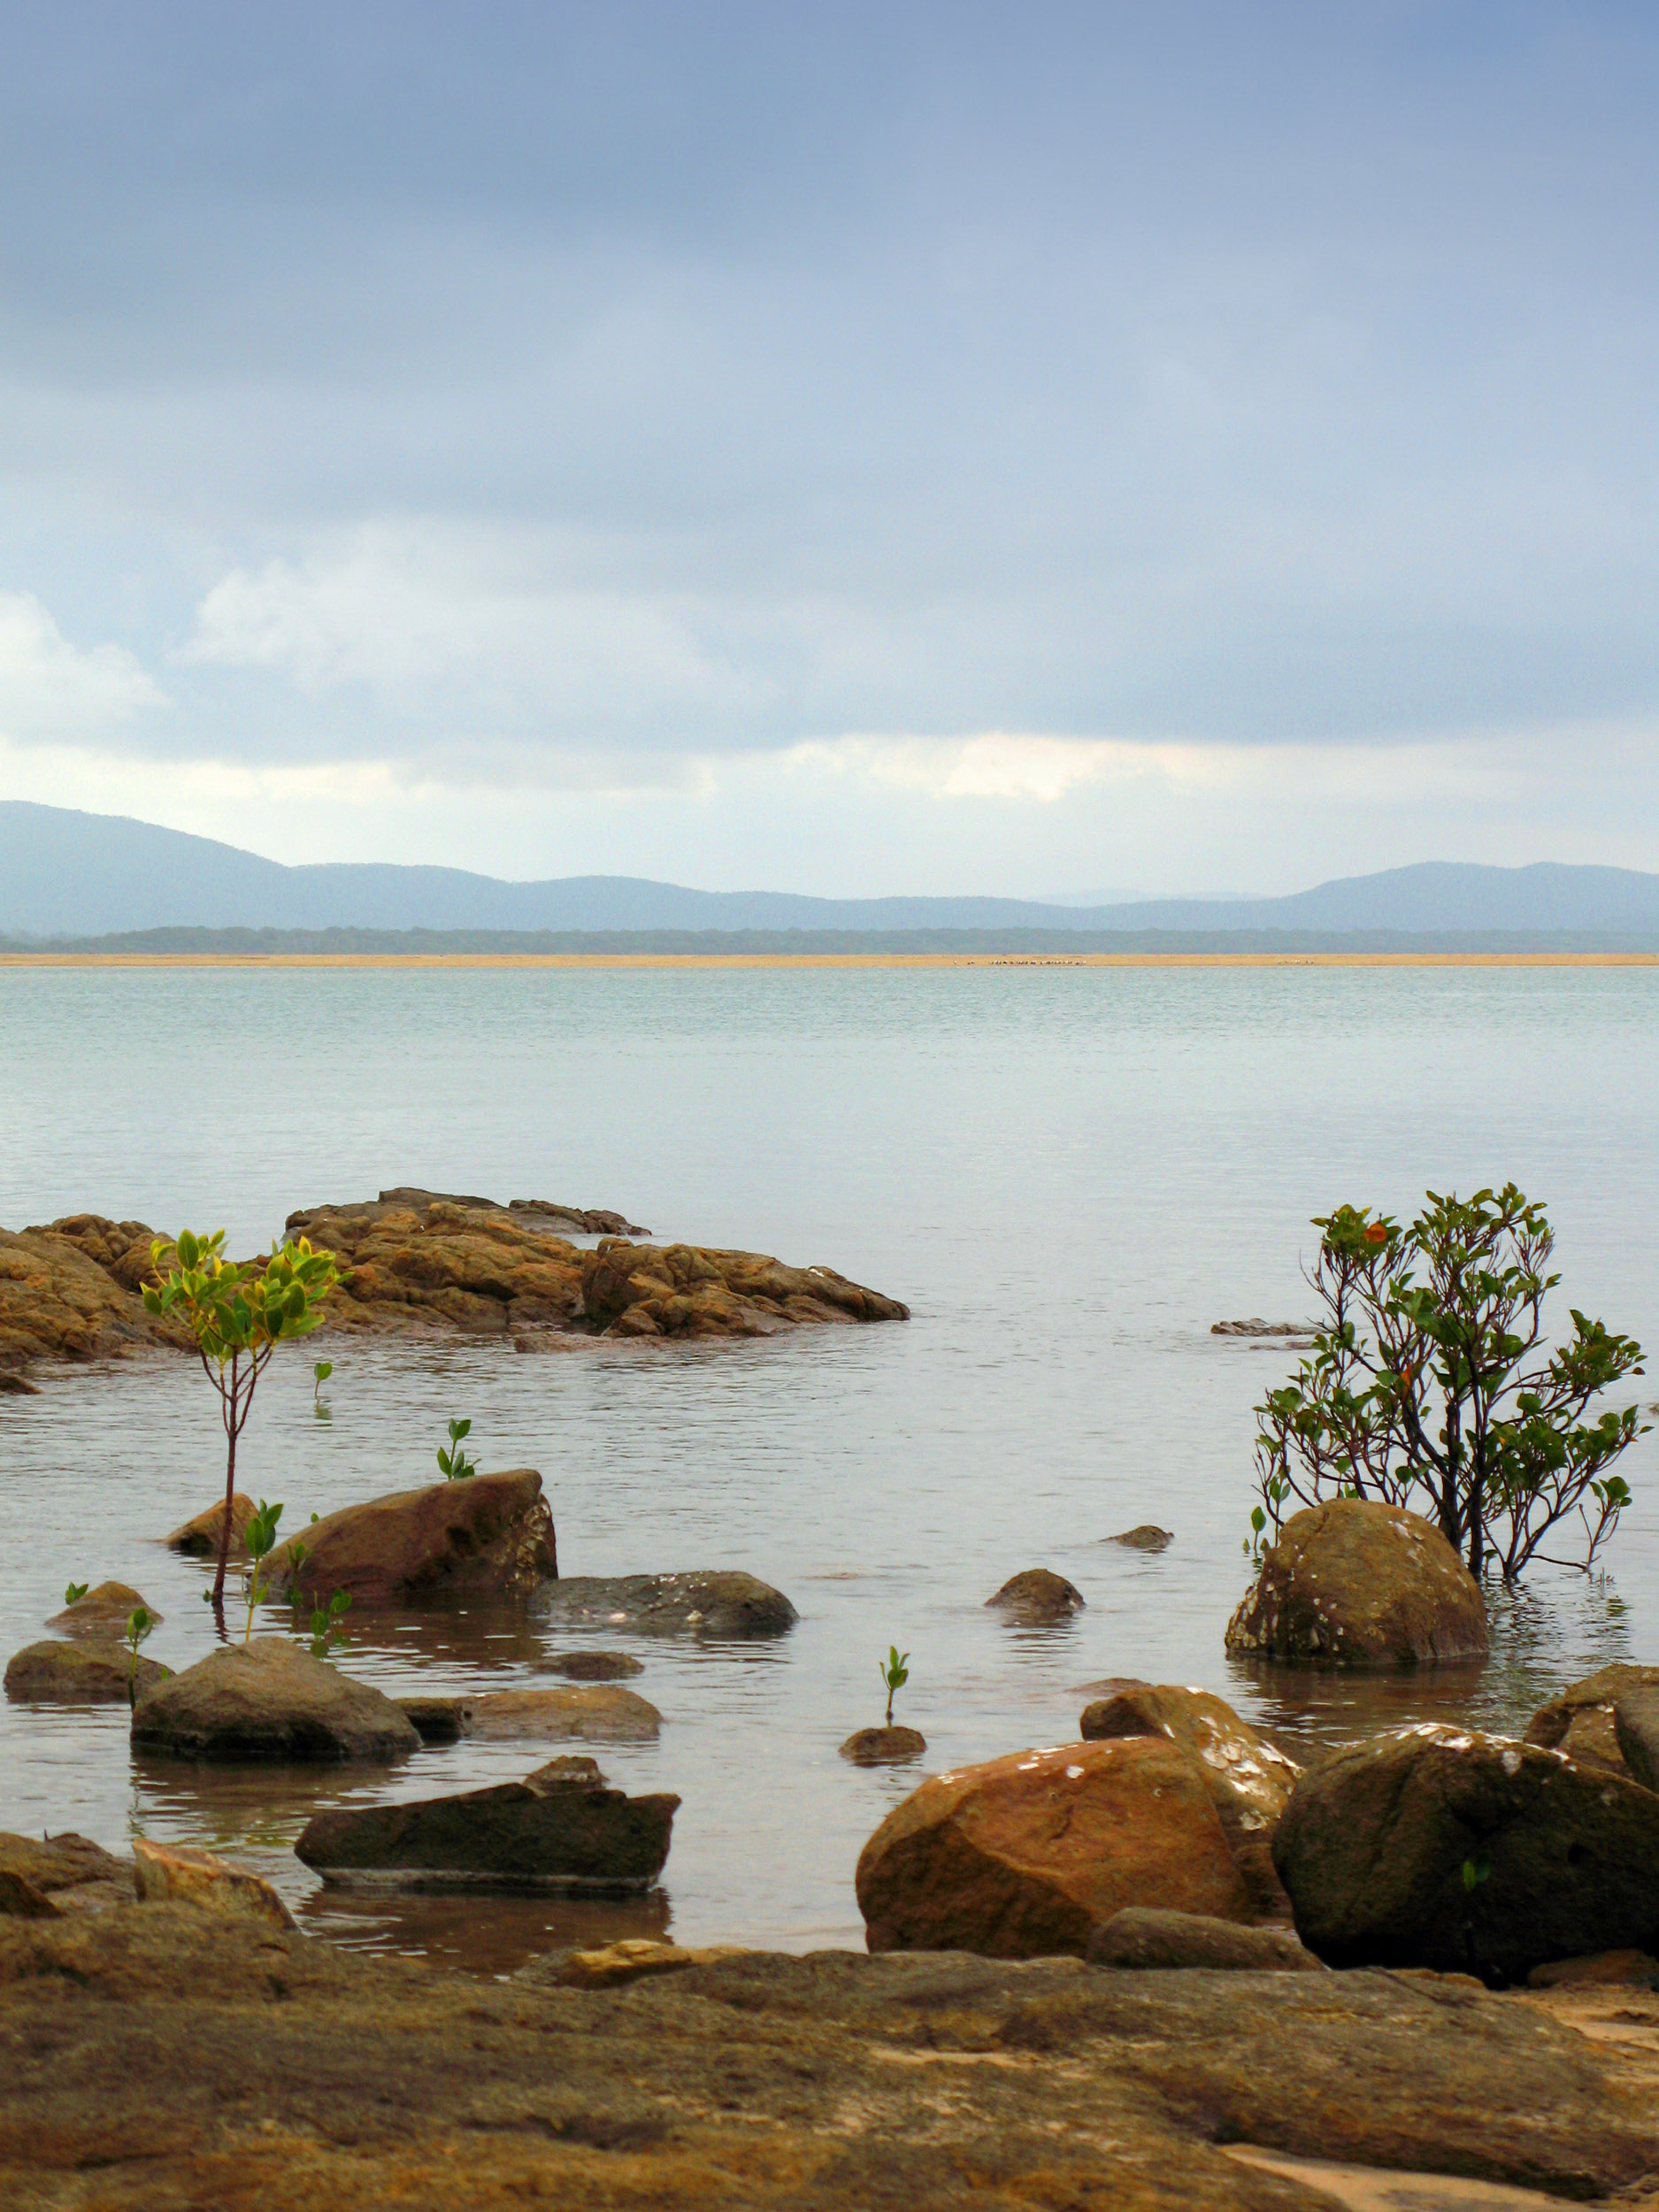 rocks and calm waters on the waterfront at town of 1770, queensland